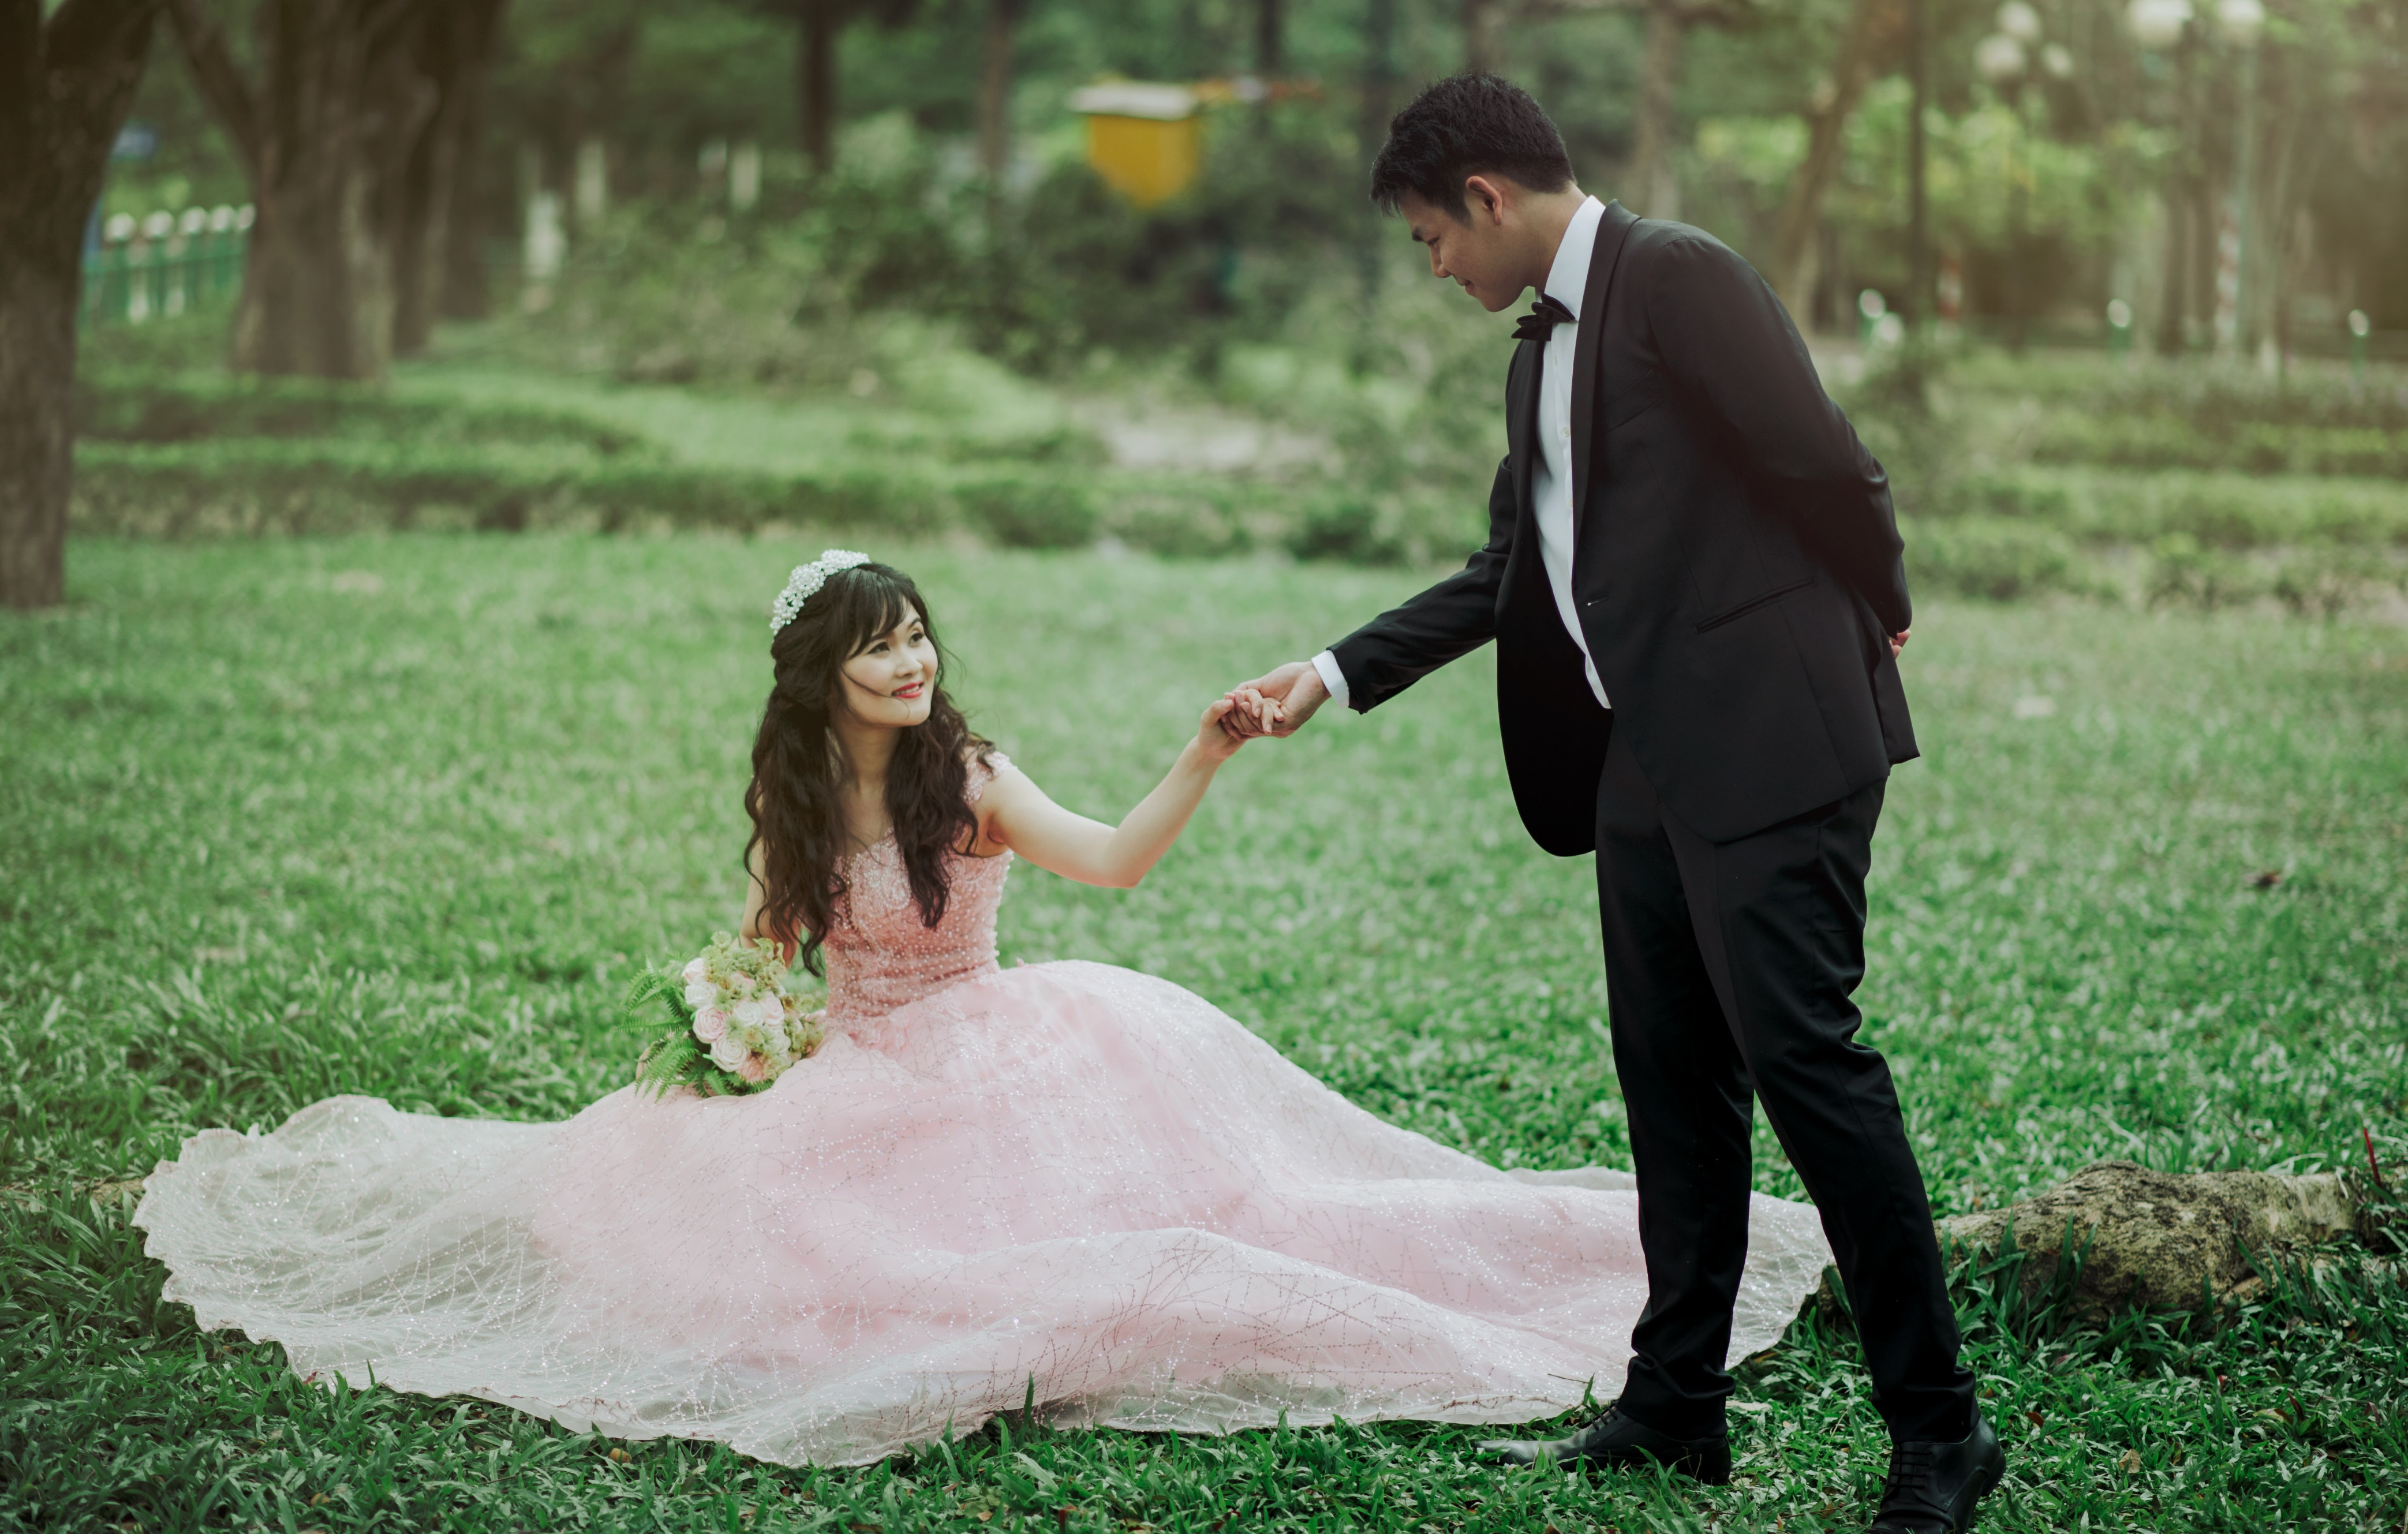 Man in 2-piece Suit Holding Woman in Peach-colored Wedding Gown White Holding Her Flower Bouquet, Adult, Park, Wedding, Wear, HQ Photo